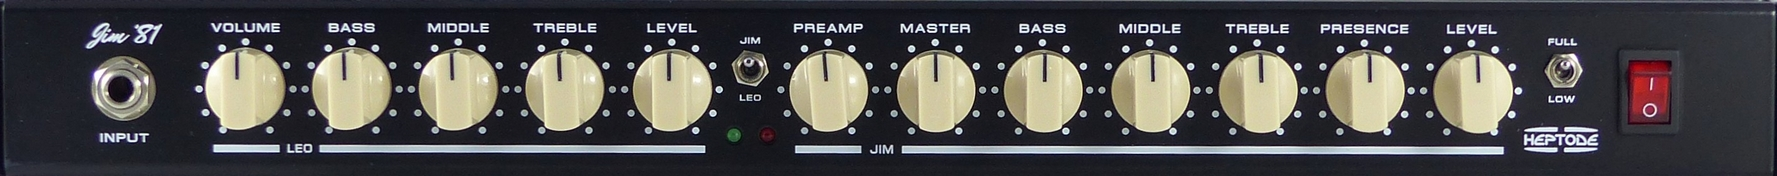 Heptode Jim '81 front panel